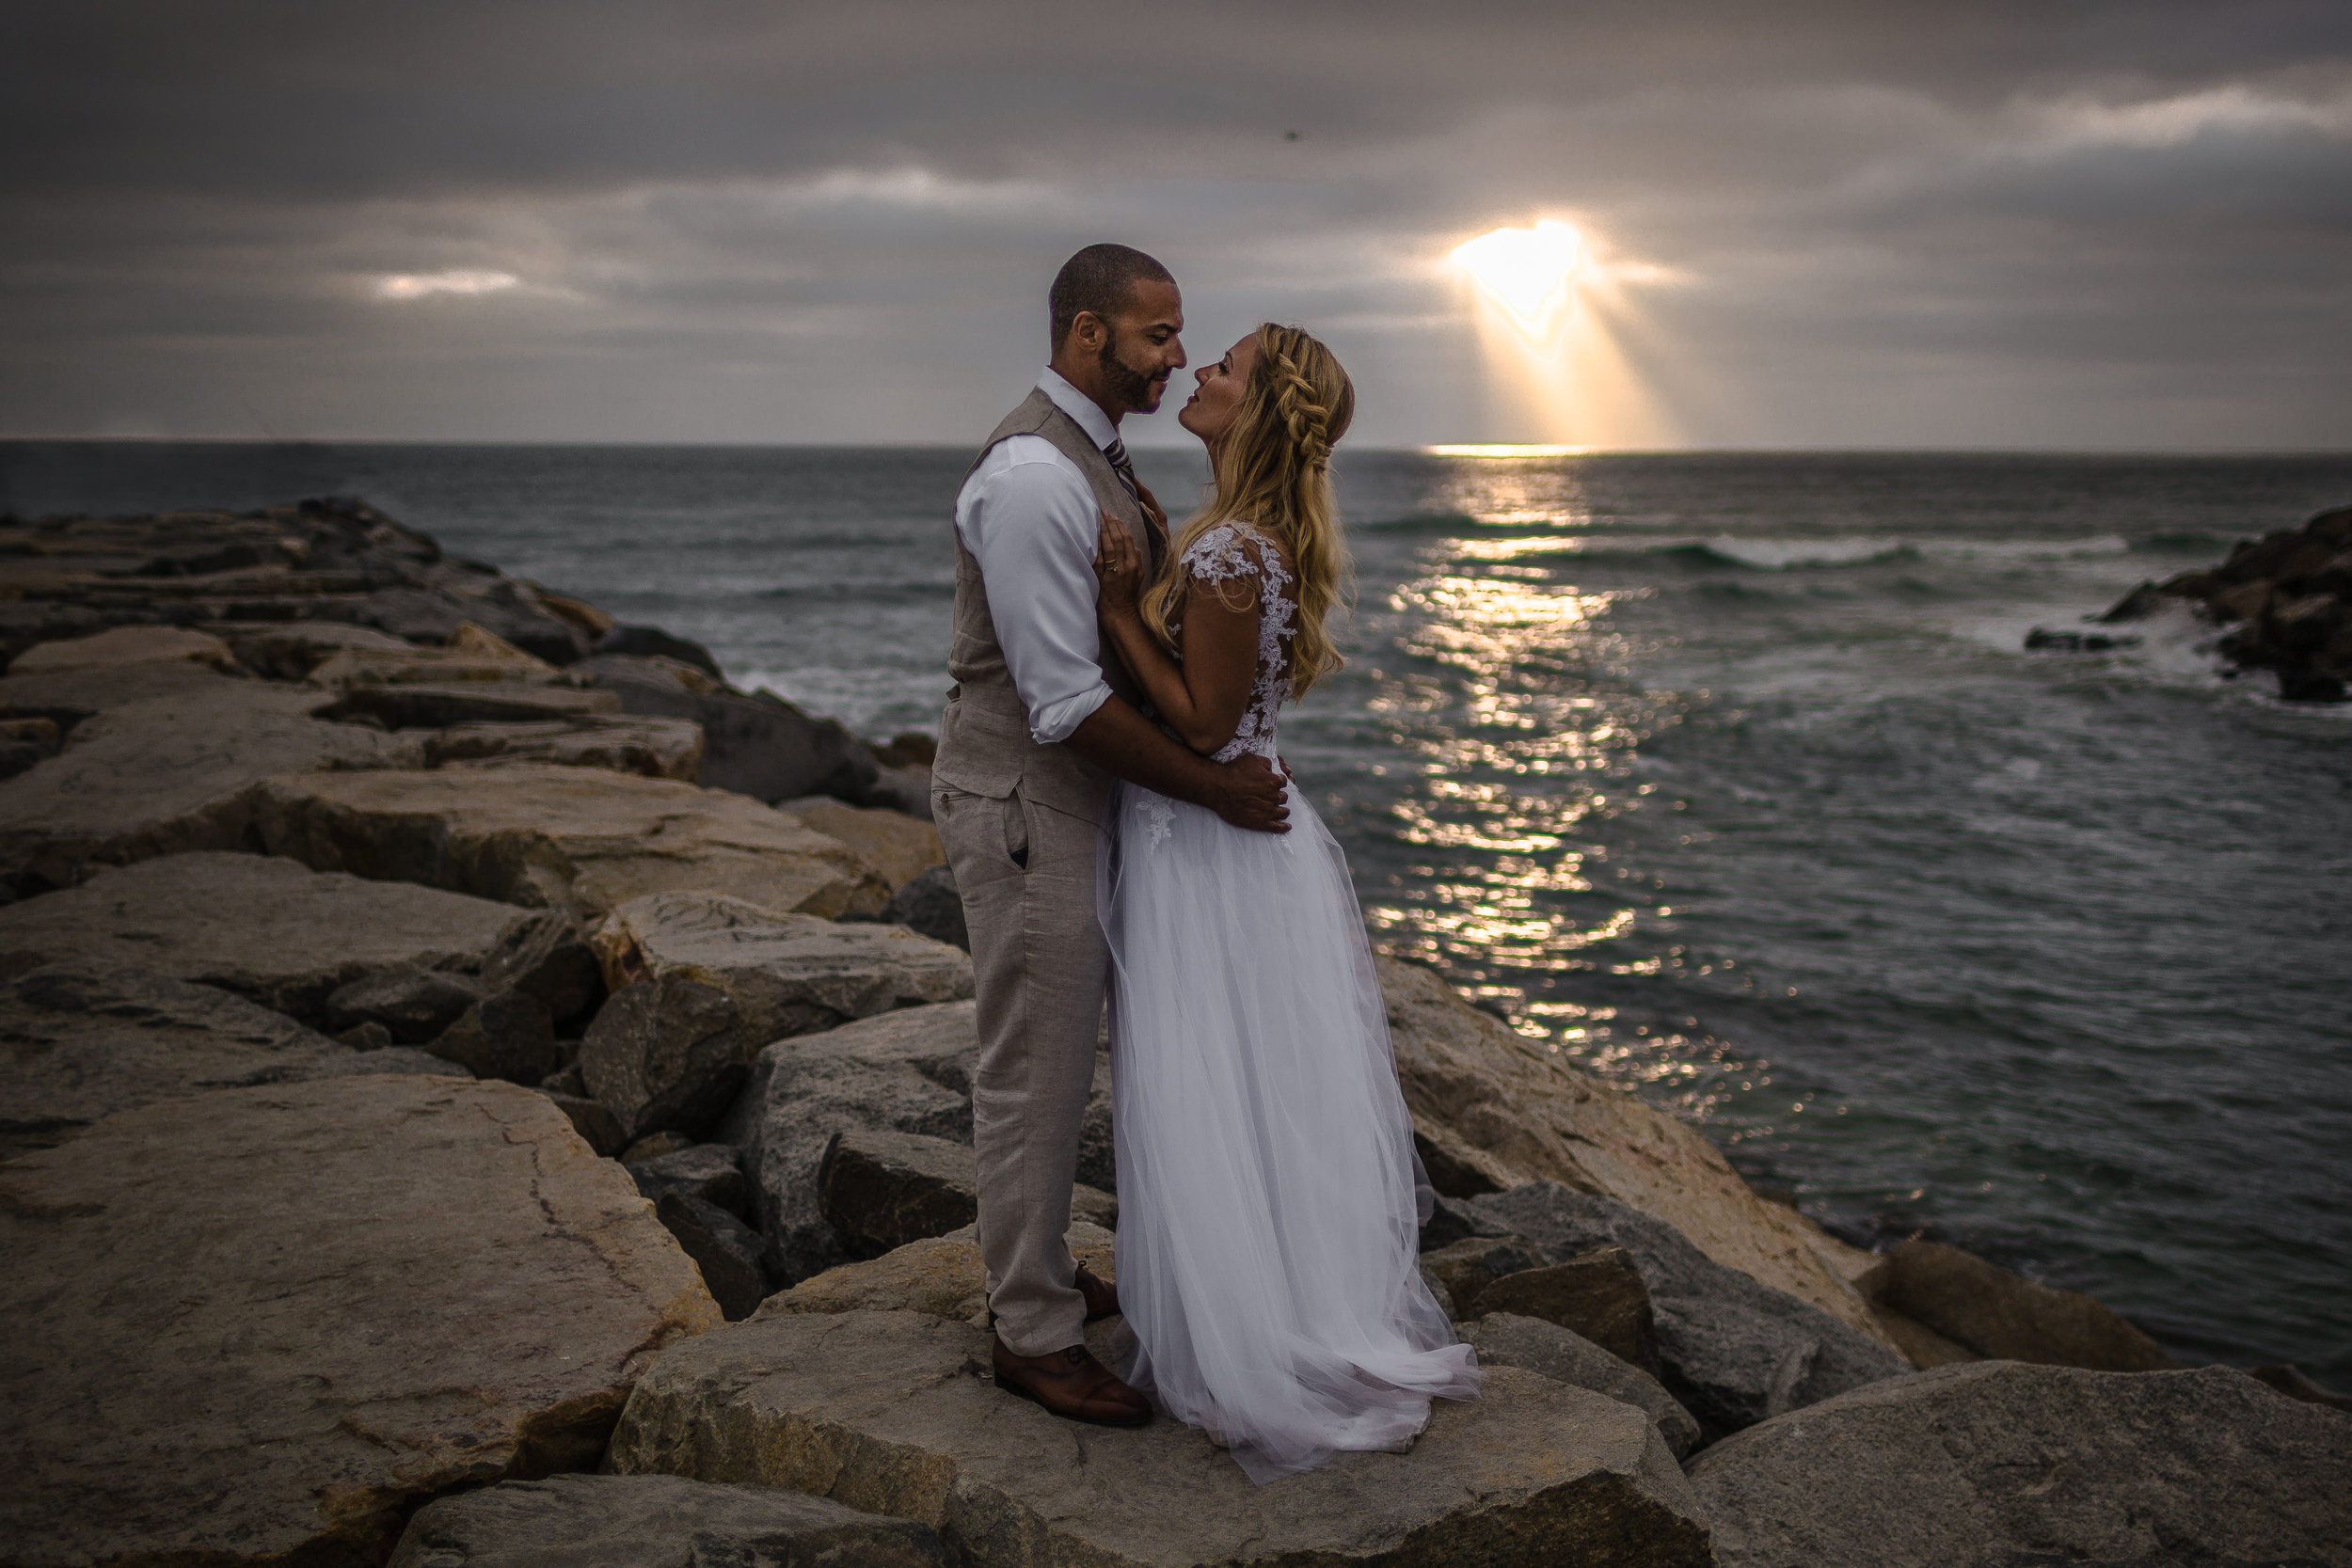 san diego wedding   photographer | groom holding woman by the waist with woman's hands on man's   chest on rocky shore with sunrays visible from afar